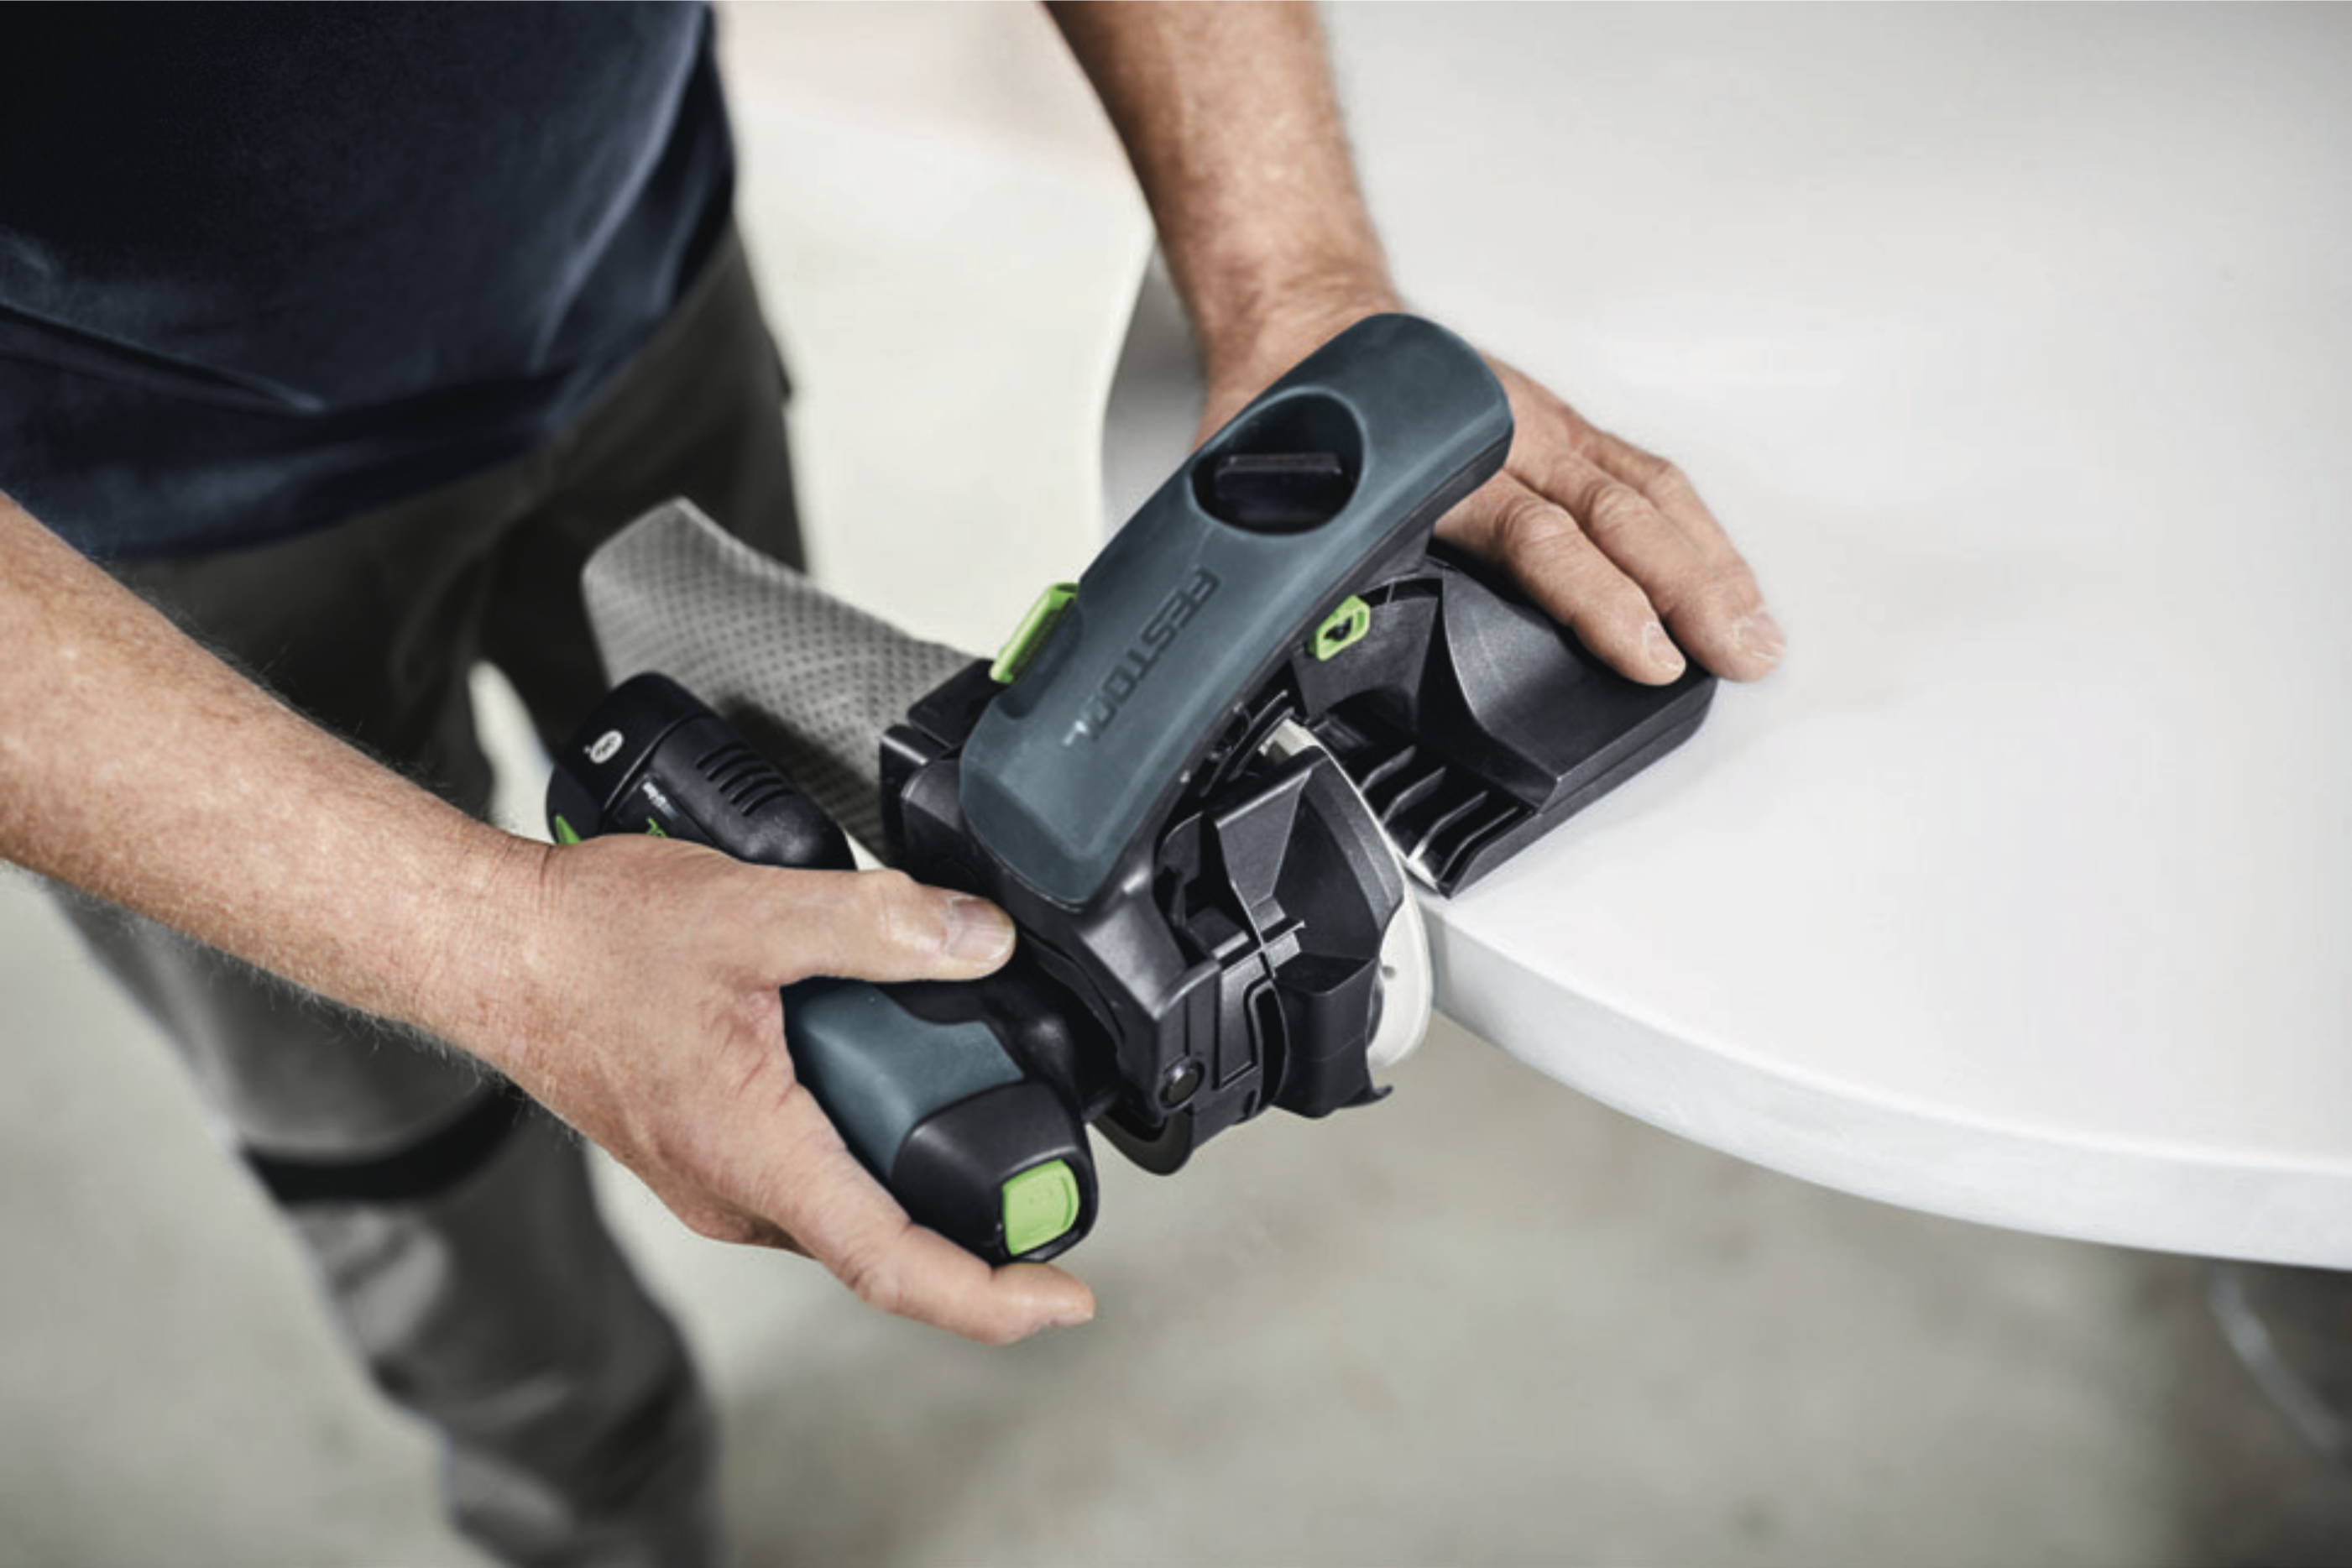 3 New Festool Products! CT 48 with AUTOCLEAN, Edge Sanding Guide, & Systainer Kit Savings